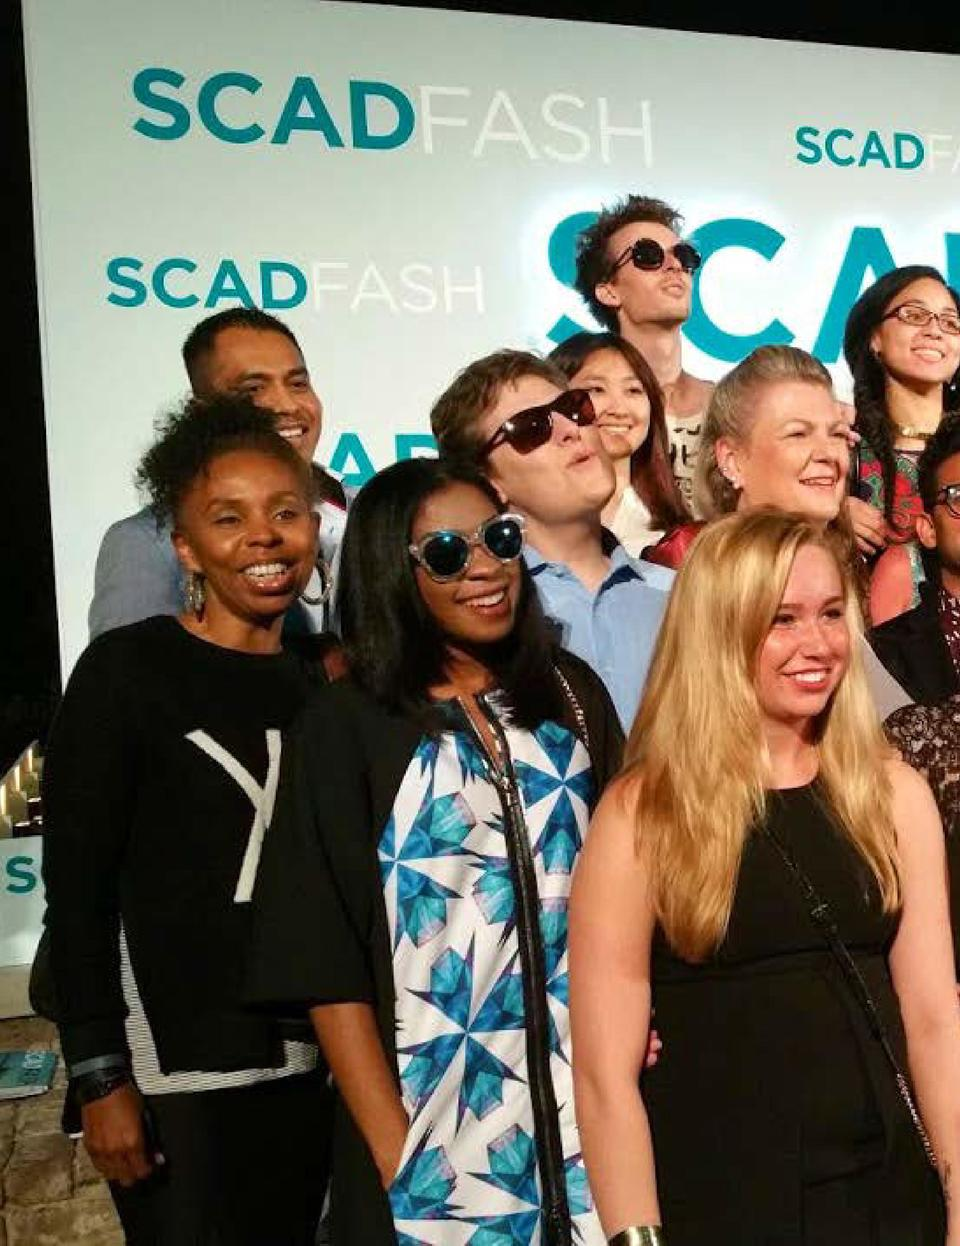 SCAD FASHION SHOW 2015